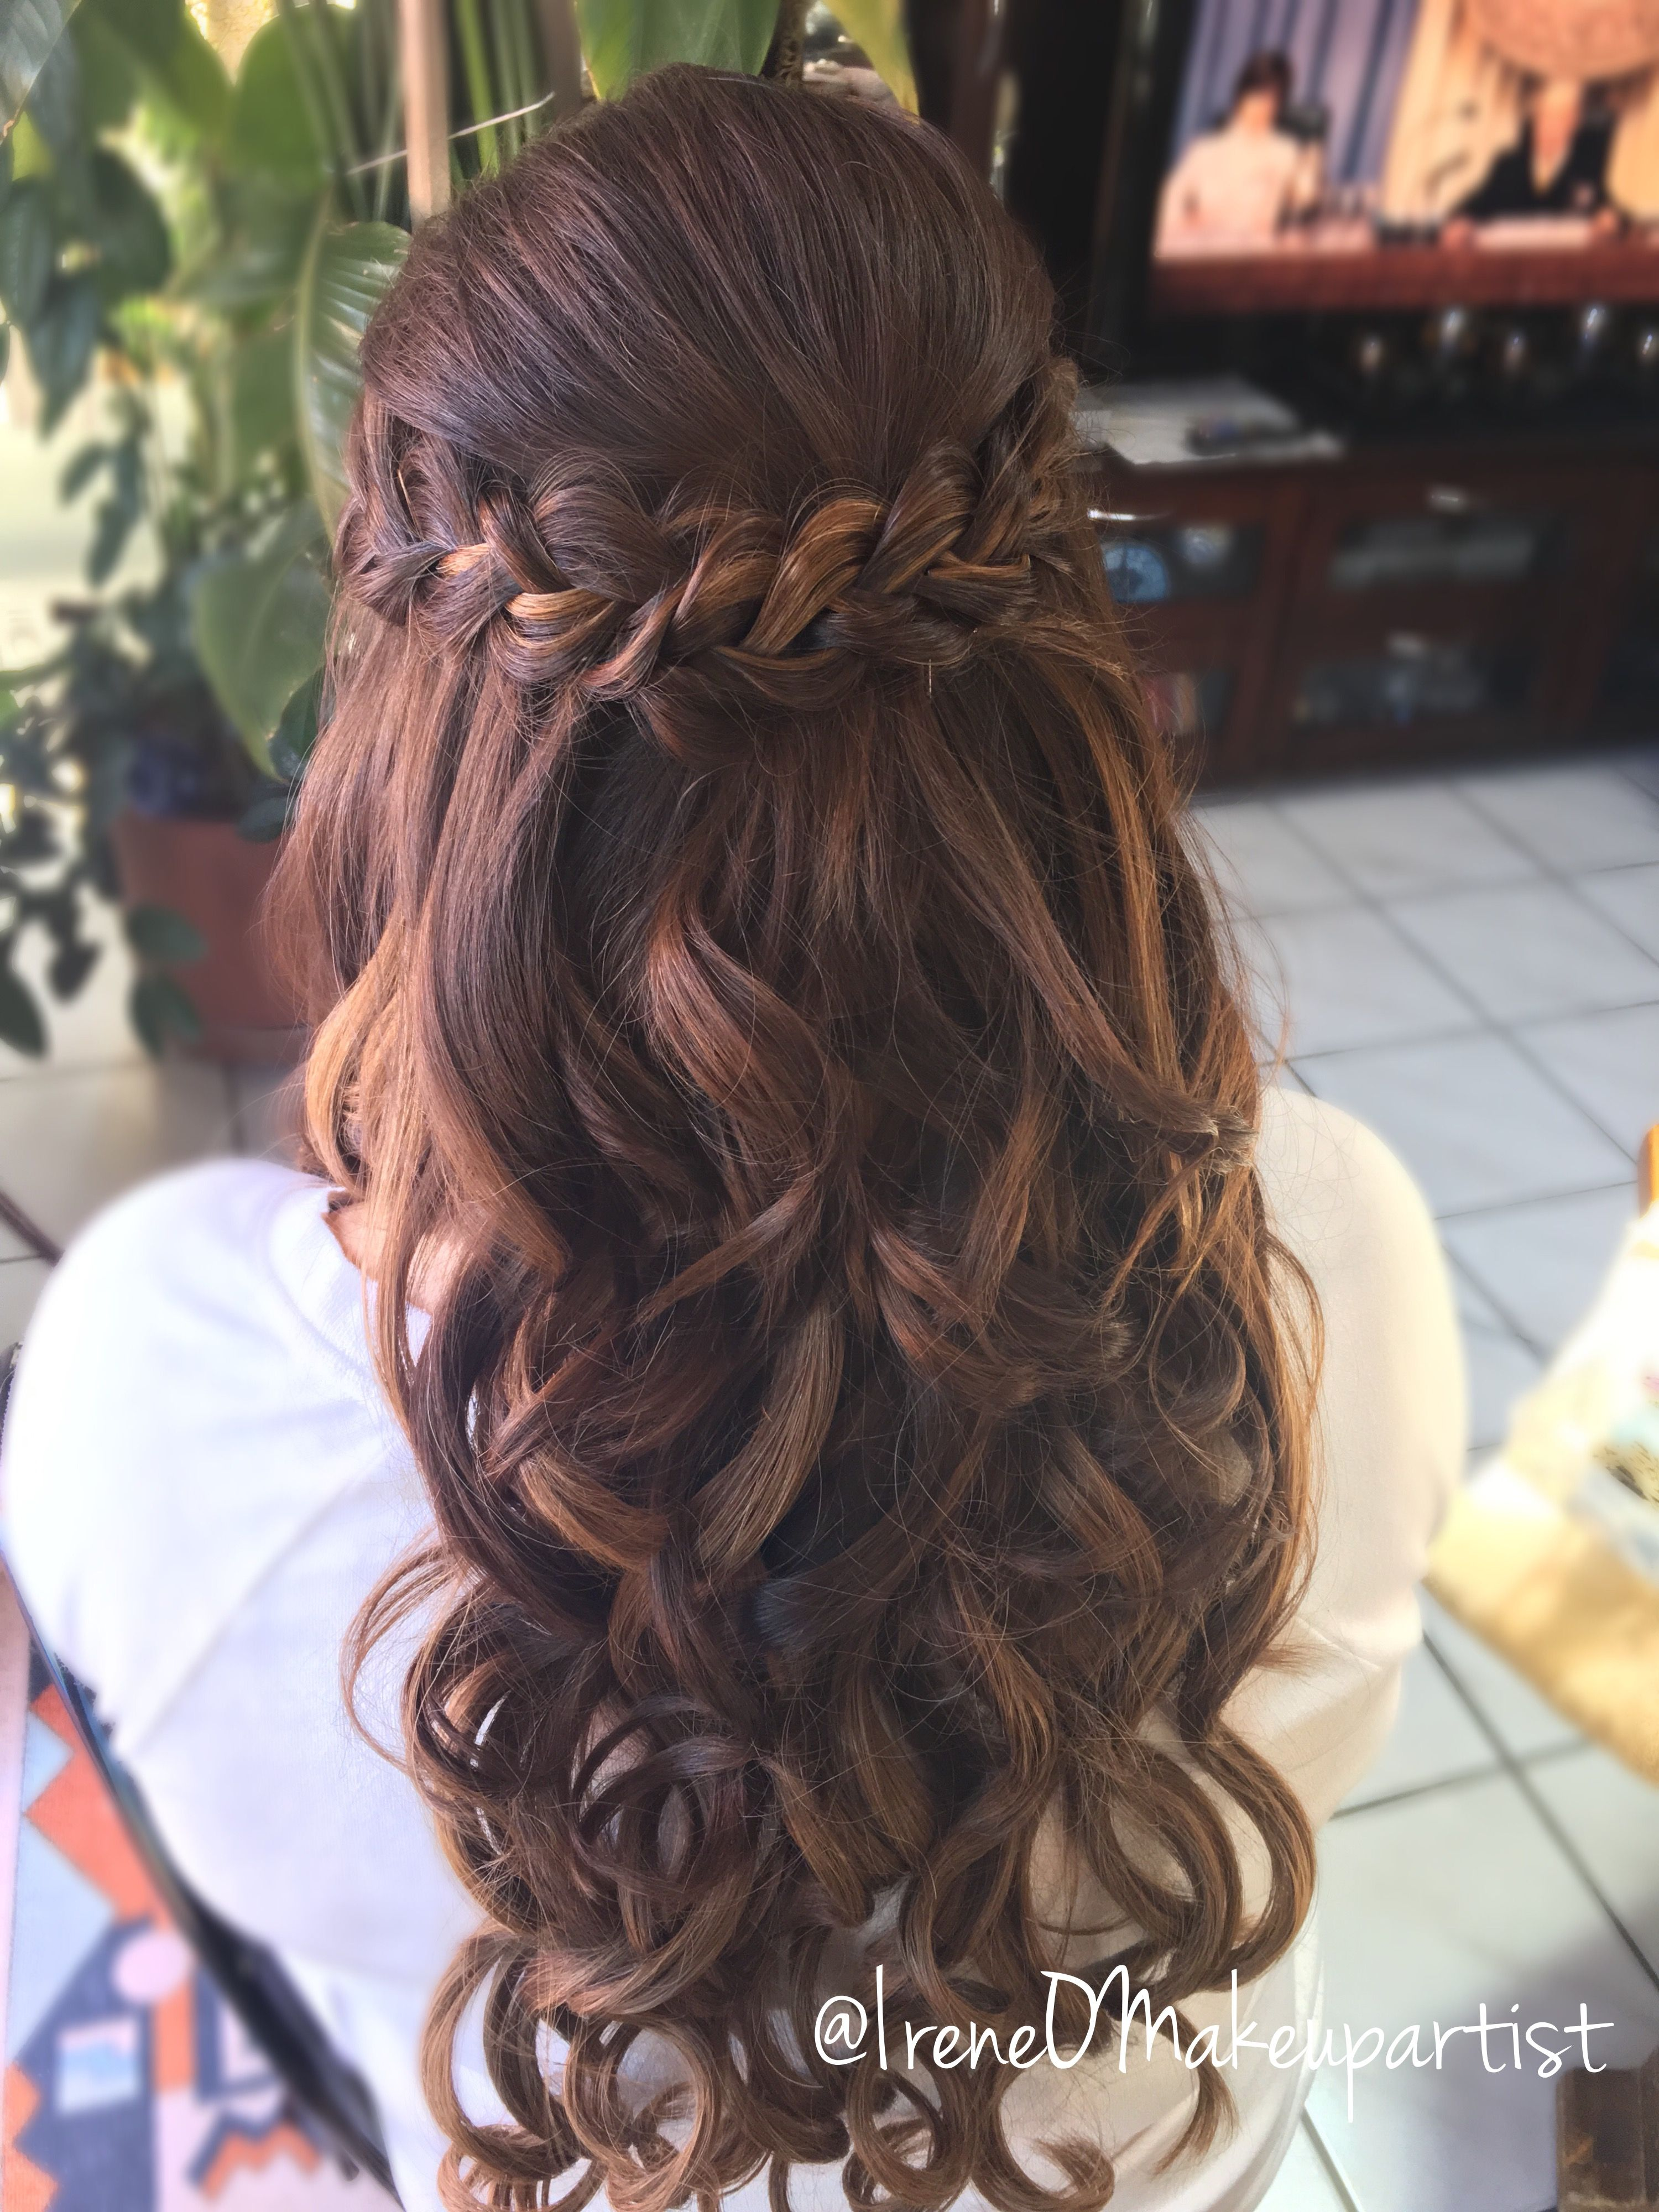 Half Up Style By Irene O Brien Braids And Curls Bridalhair Bridesmaids Hairstyles Long Hair Styles Hair Styles Wedding Hairstyles For Long Hair